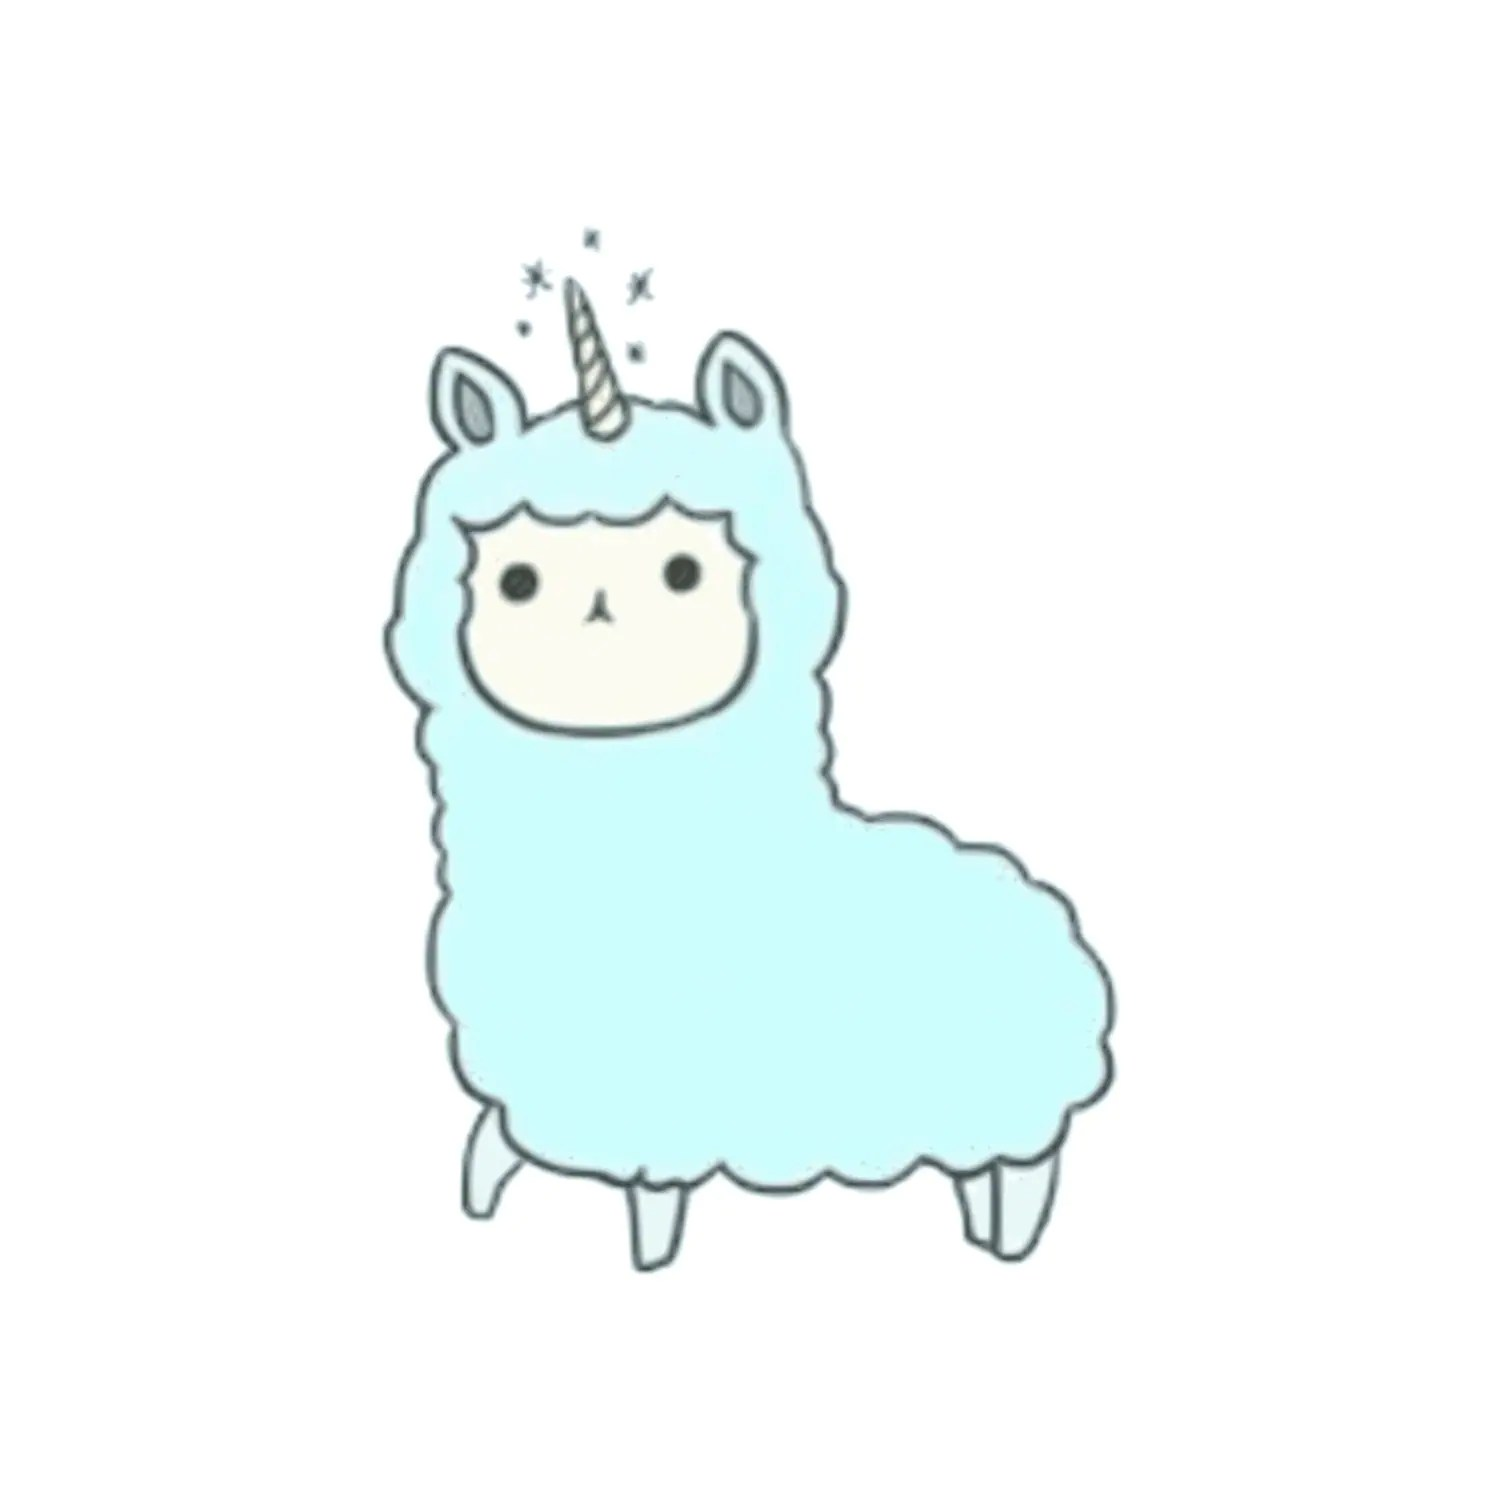 Cute Sheep Drawing Tumblr Cute Sheep Drawing Tumblr